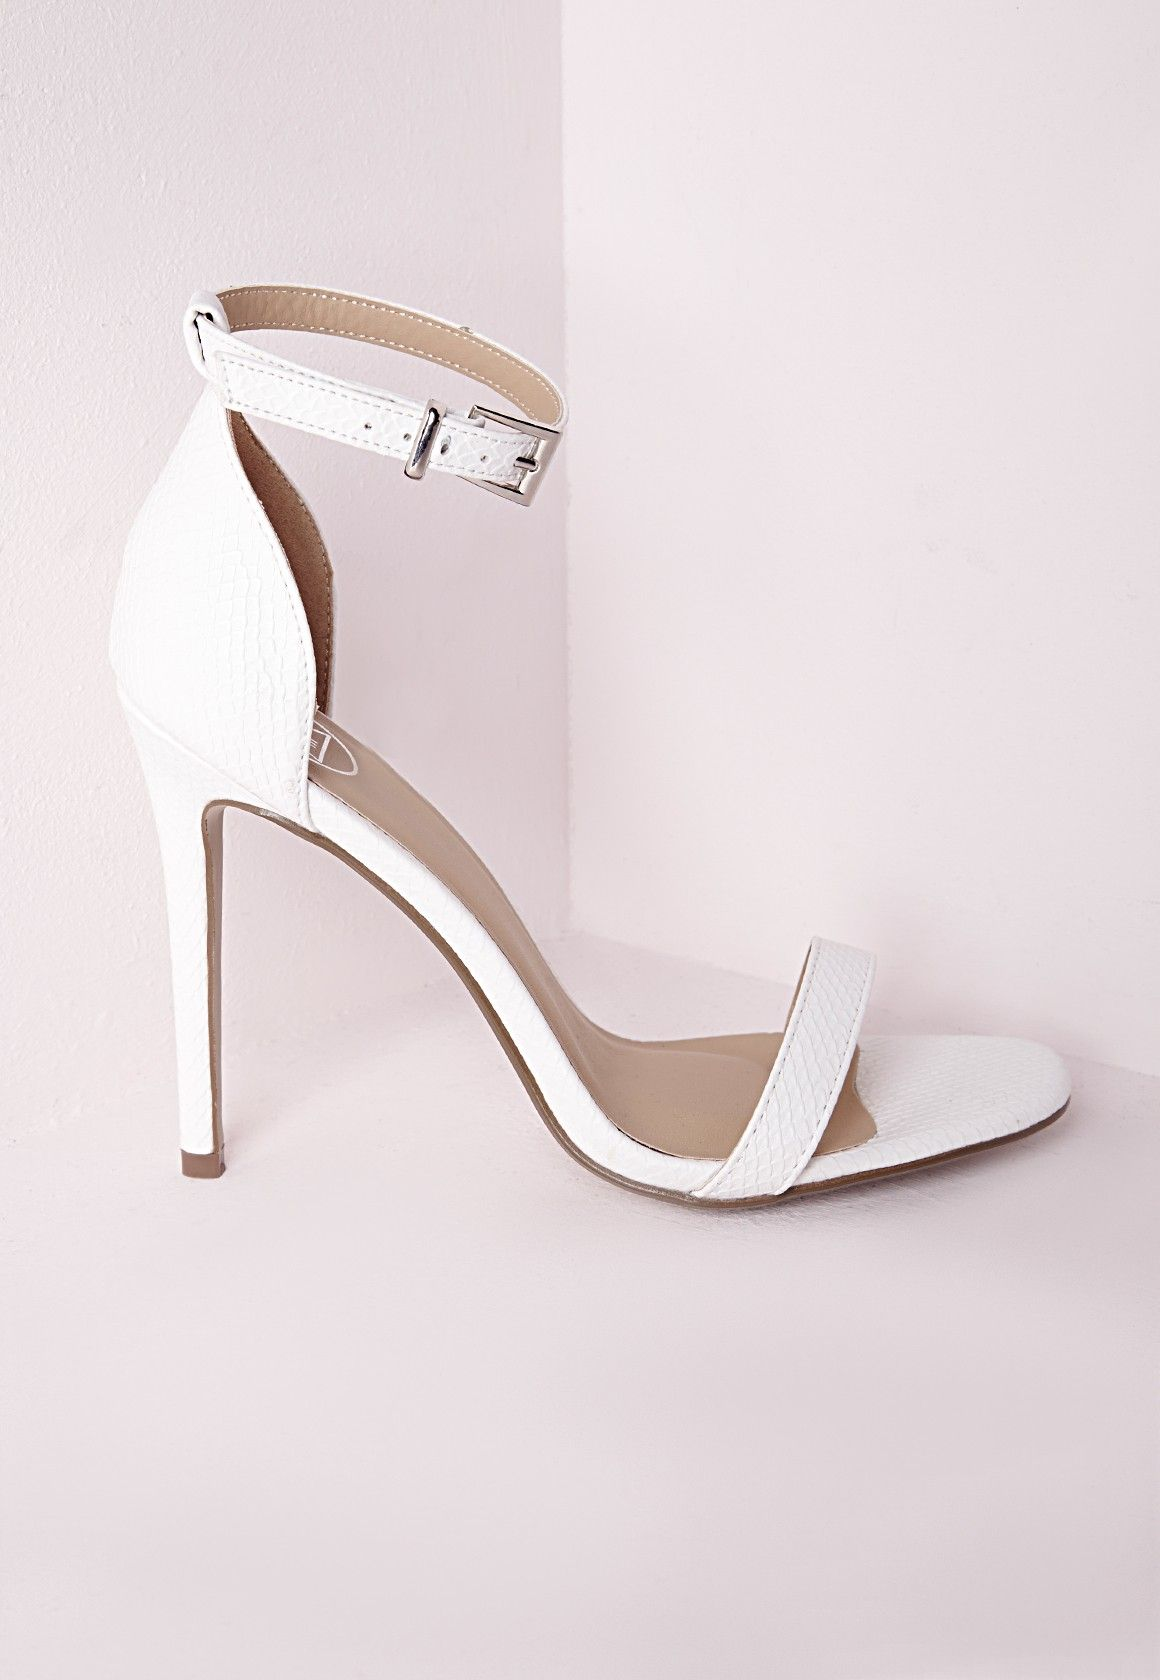 5982599e30 Barely There Strappy Heeled Sandals White Croc - Shoes - High Heels -  Missguided